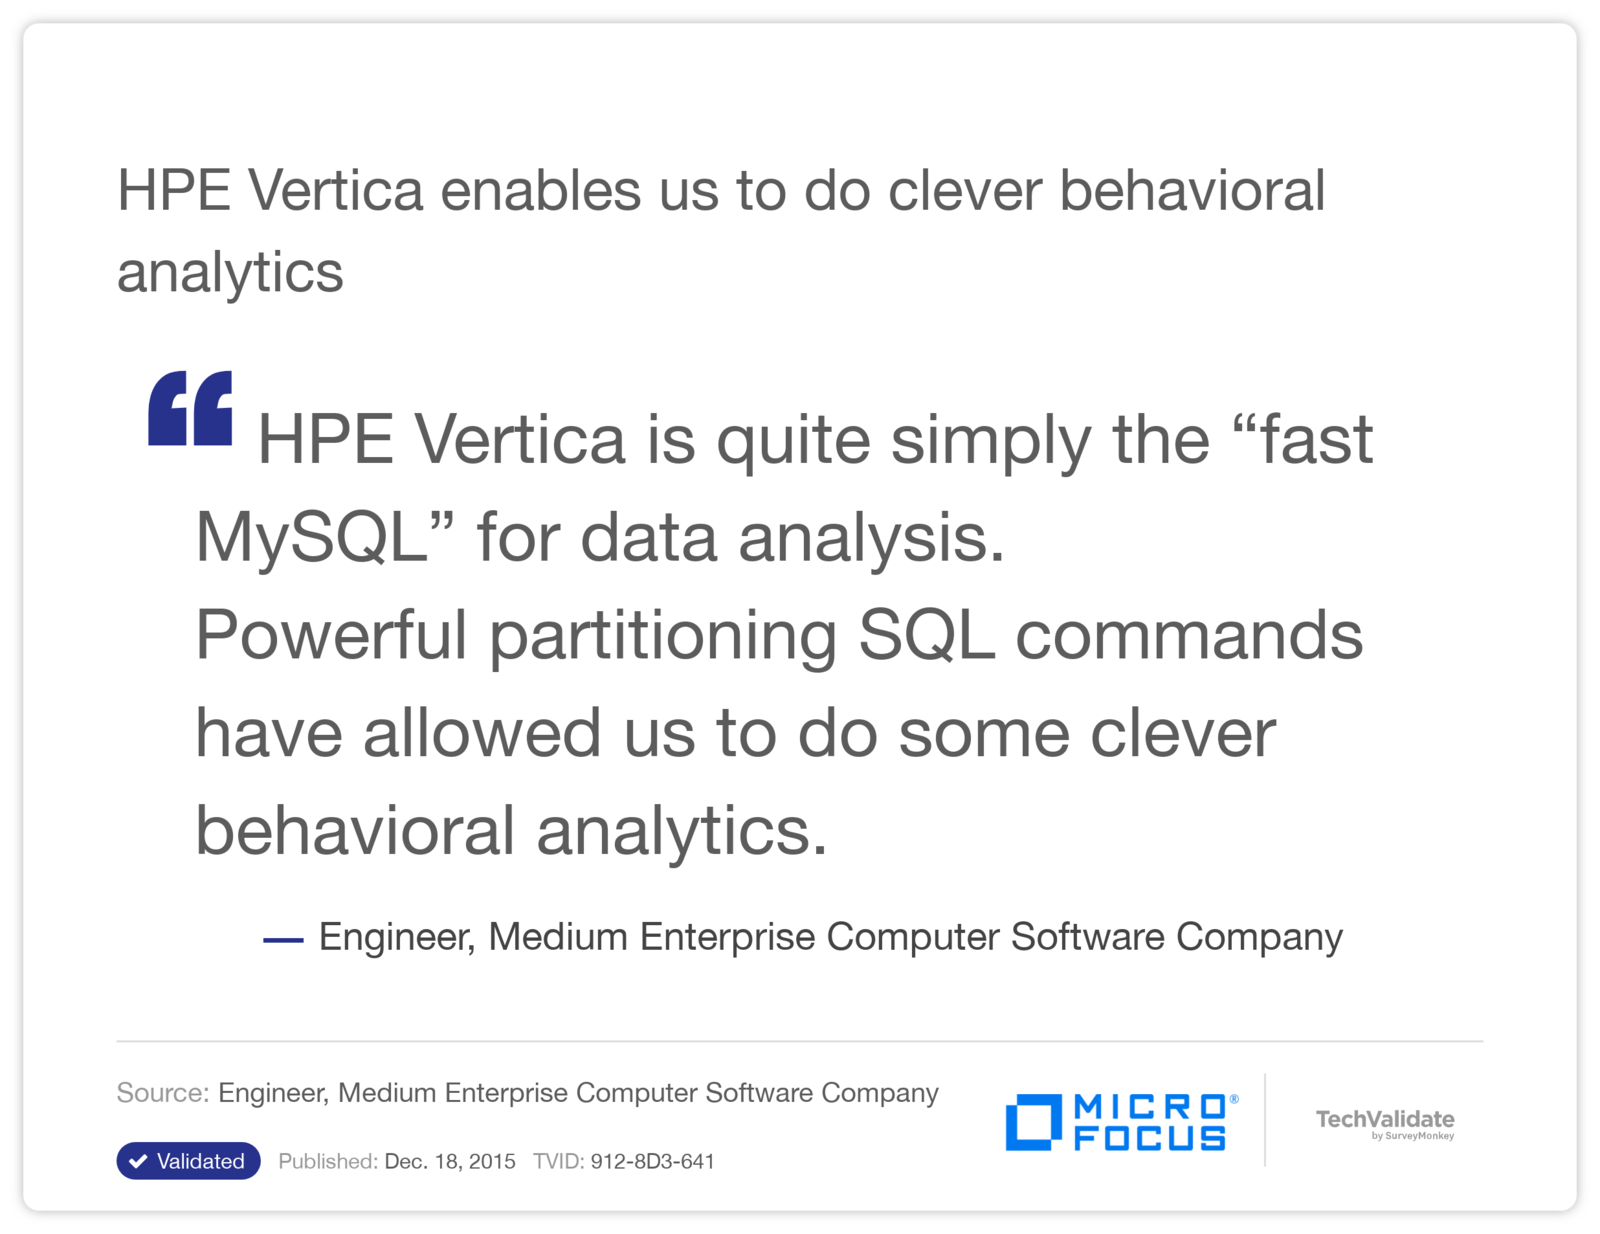 HPE Vertica enables us to do clever behavioral analytics